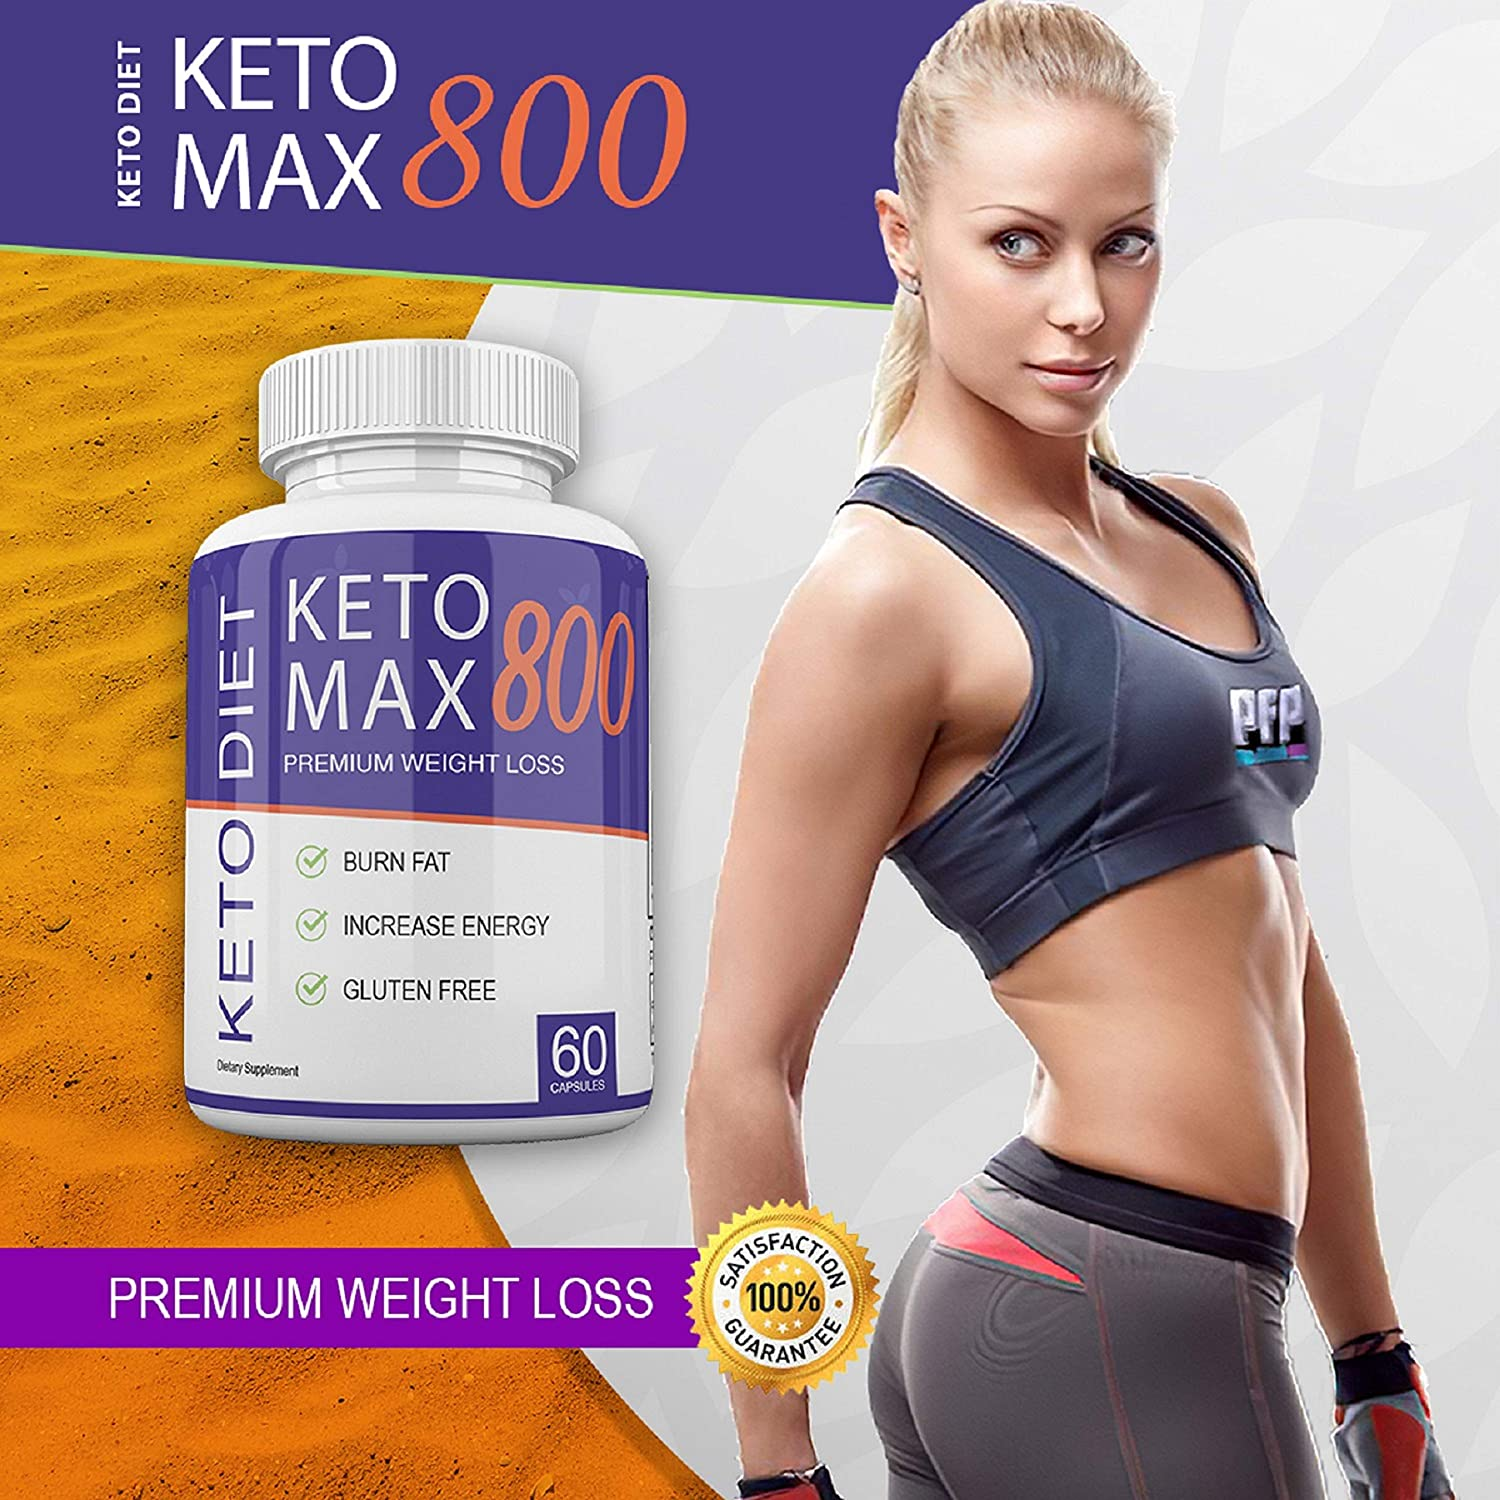 How To Use Keto Now Max?